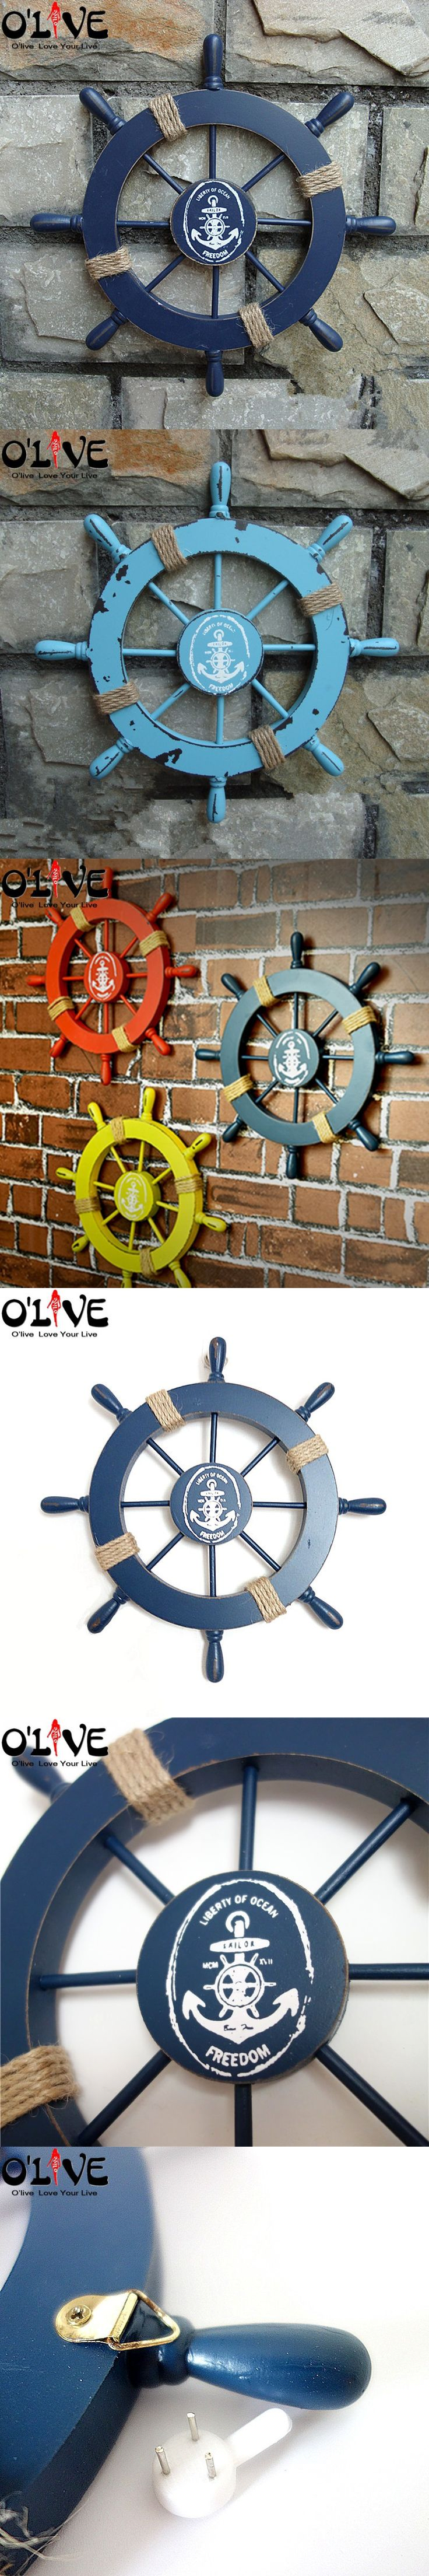 Best 25 ship wheel ideas on pinterest ship wheel tattoo anchor mediterranean style nautical decor wooden helm crafts vintage home decor marine boat ship wheel hanging wall decoration bar amipublicfo Images